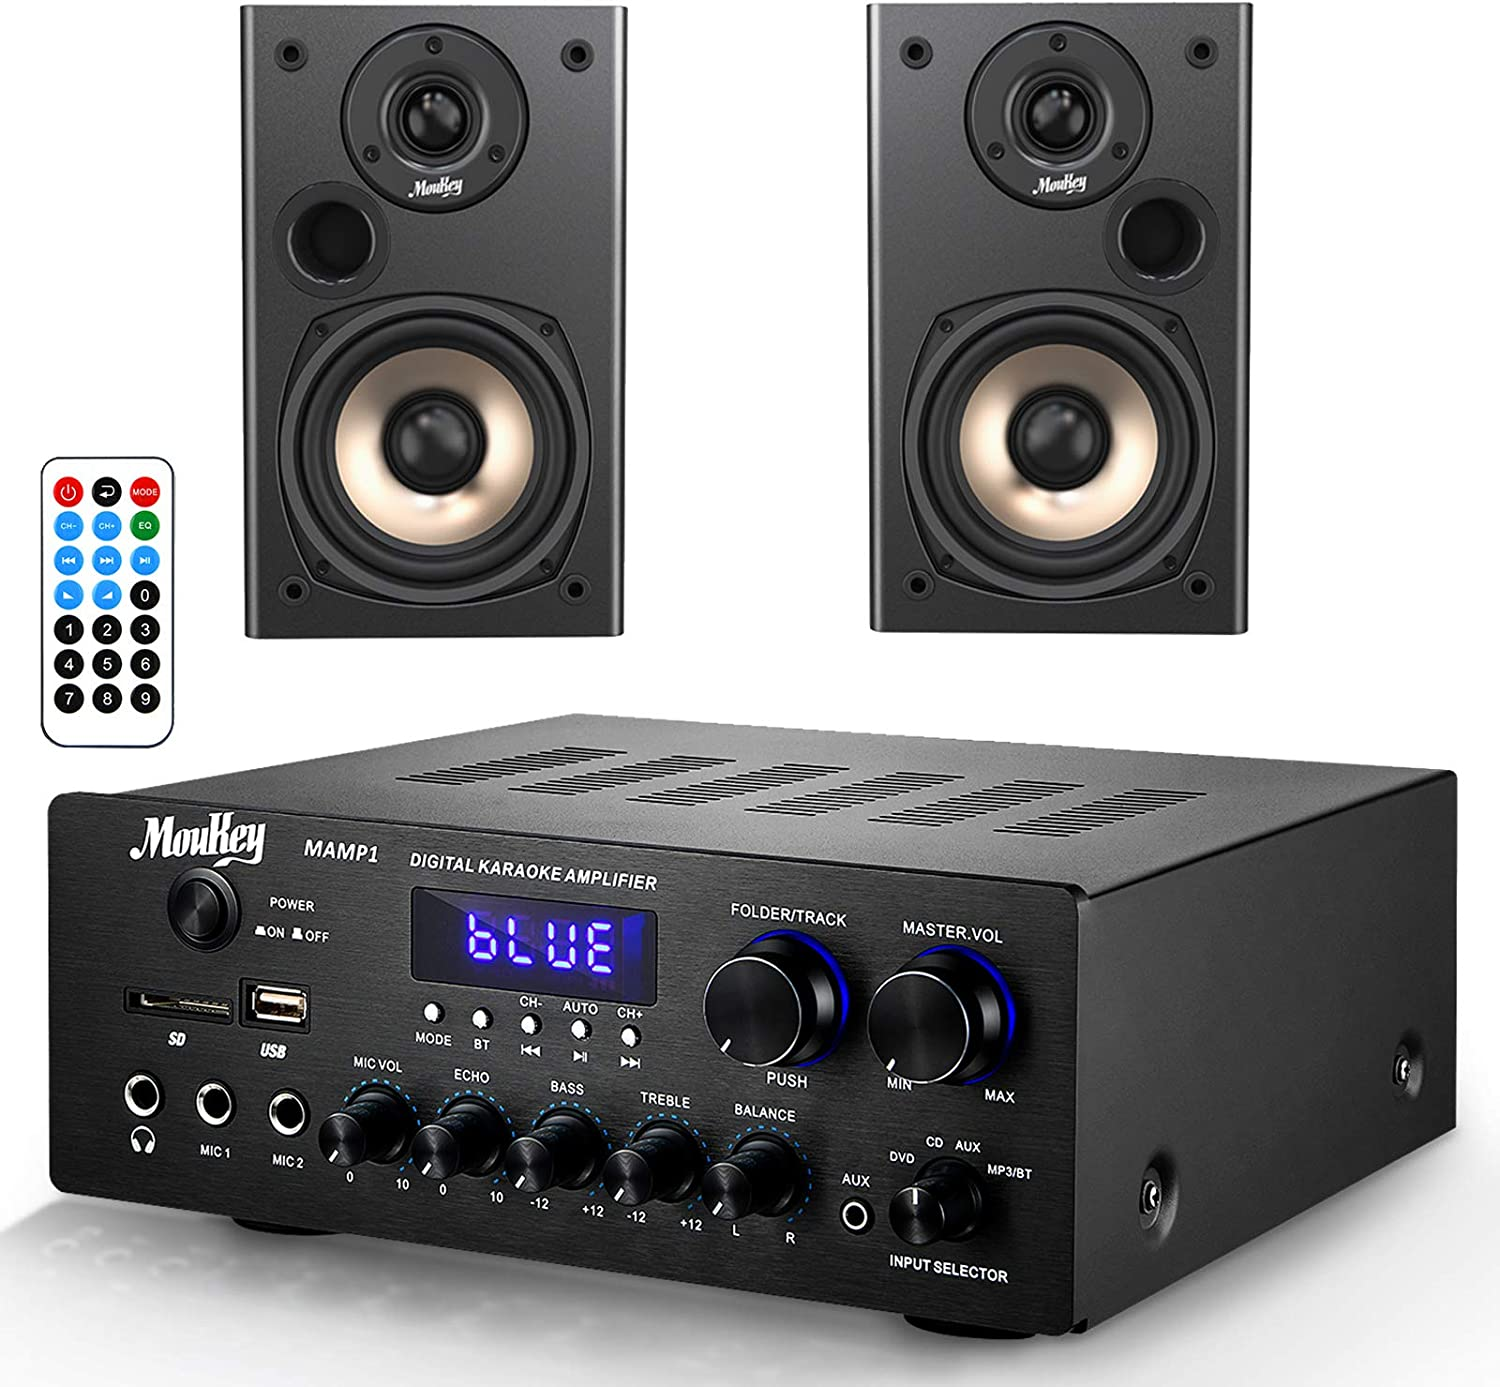 Moukey Home Audio Power Amplifier System with Passive Bookshelf Speakers, 220W Bluetooth Sound Audio Stereo Receiver and 100W Peak Power Speakers Pair for Home Theater